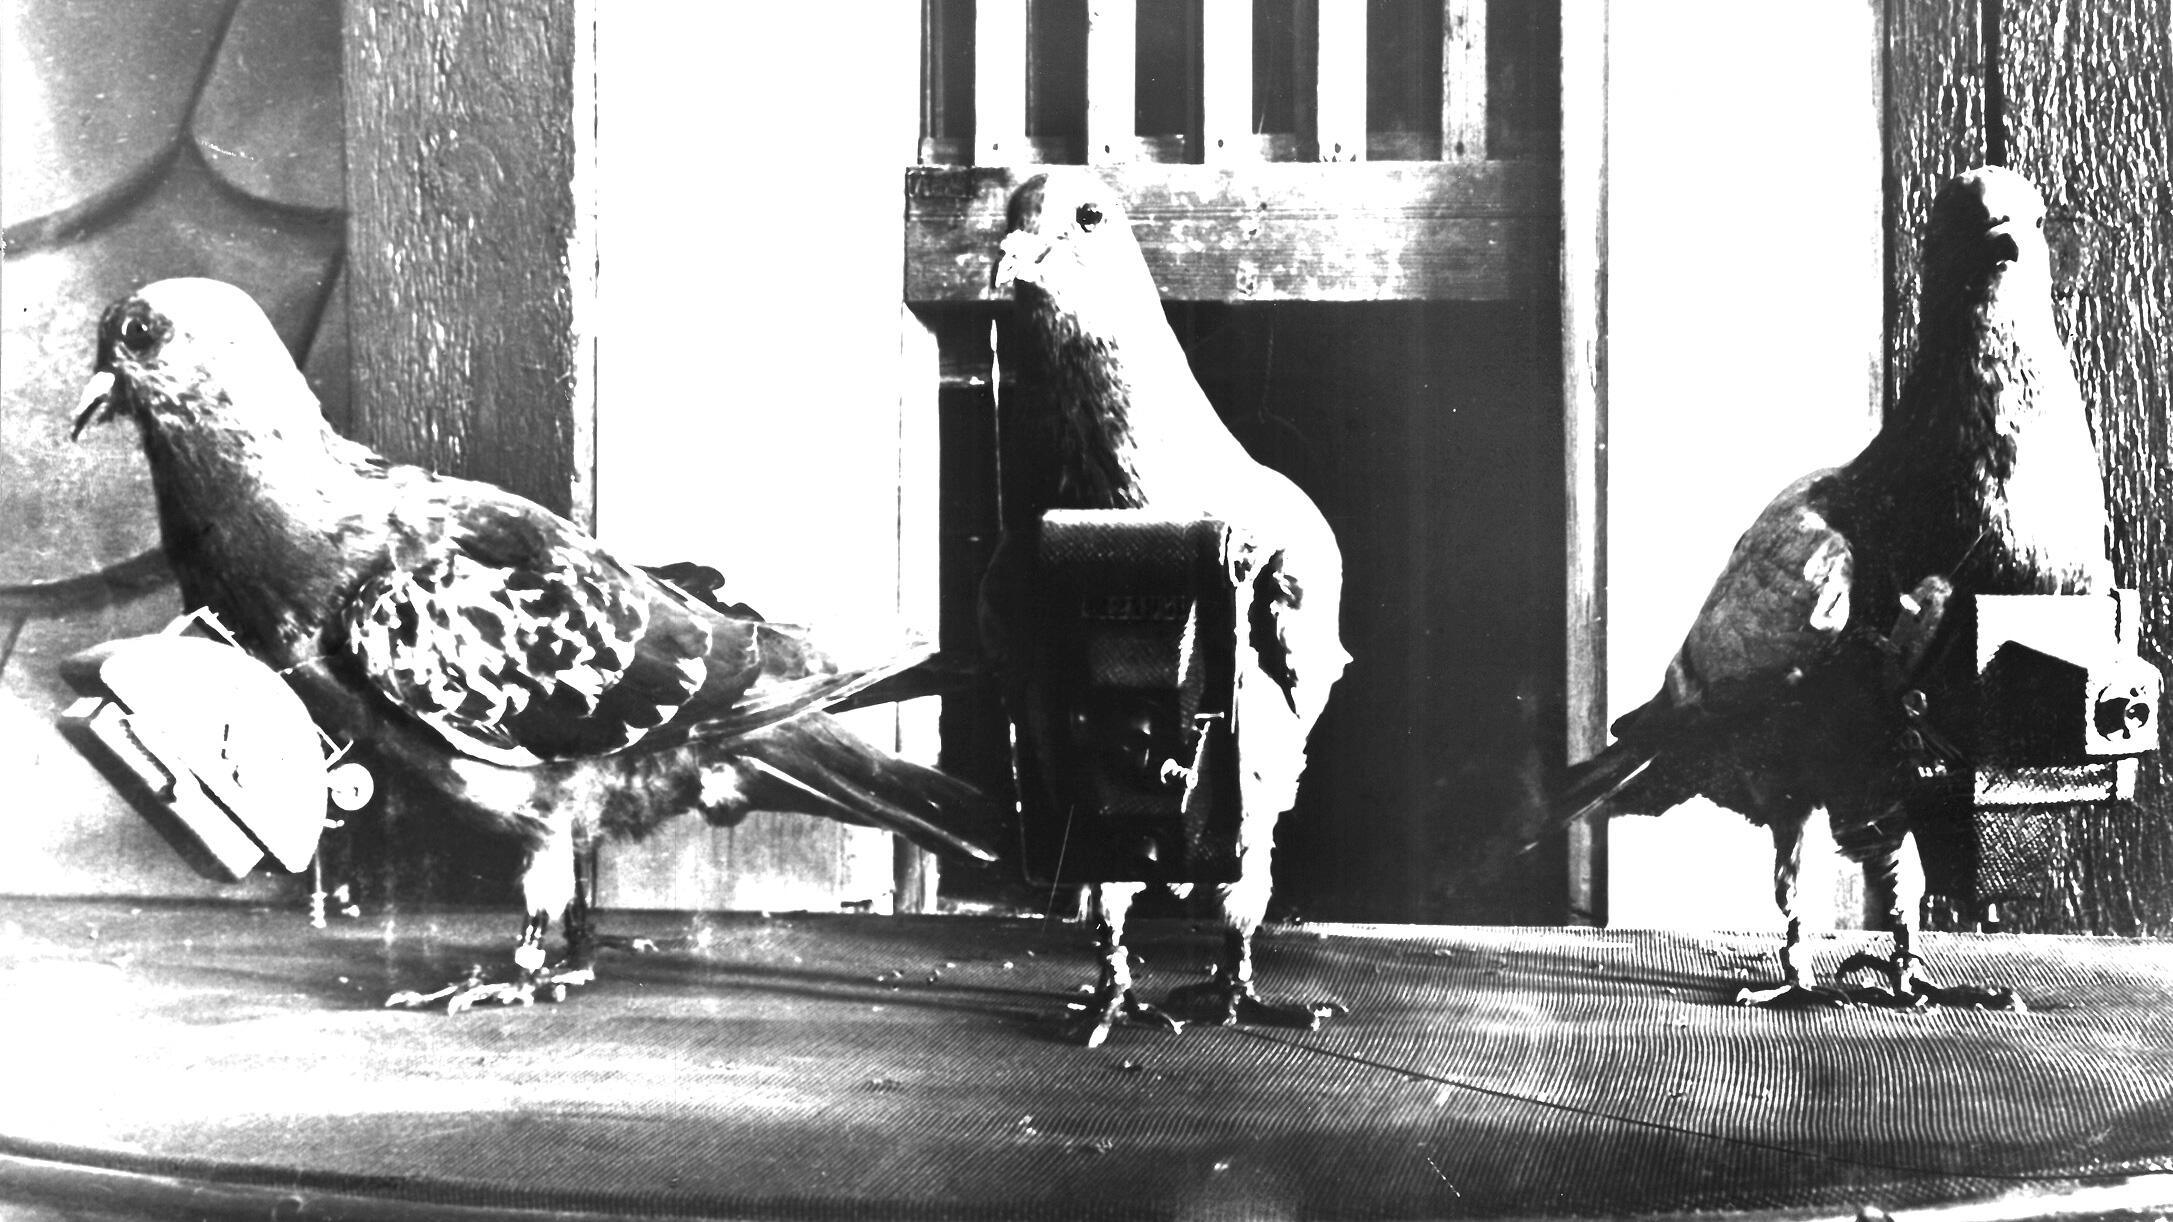 During World War II, the U.S. Army trained pigeons to assist in various intelligence-gathering missions. In total, 32 racing pigeons received Dickin Medals—the animal-equivalent of a Victoria Cross—for their efforts. AR/BNPS